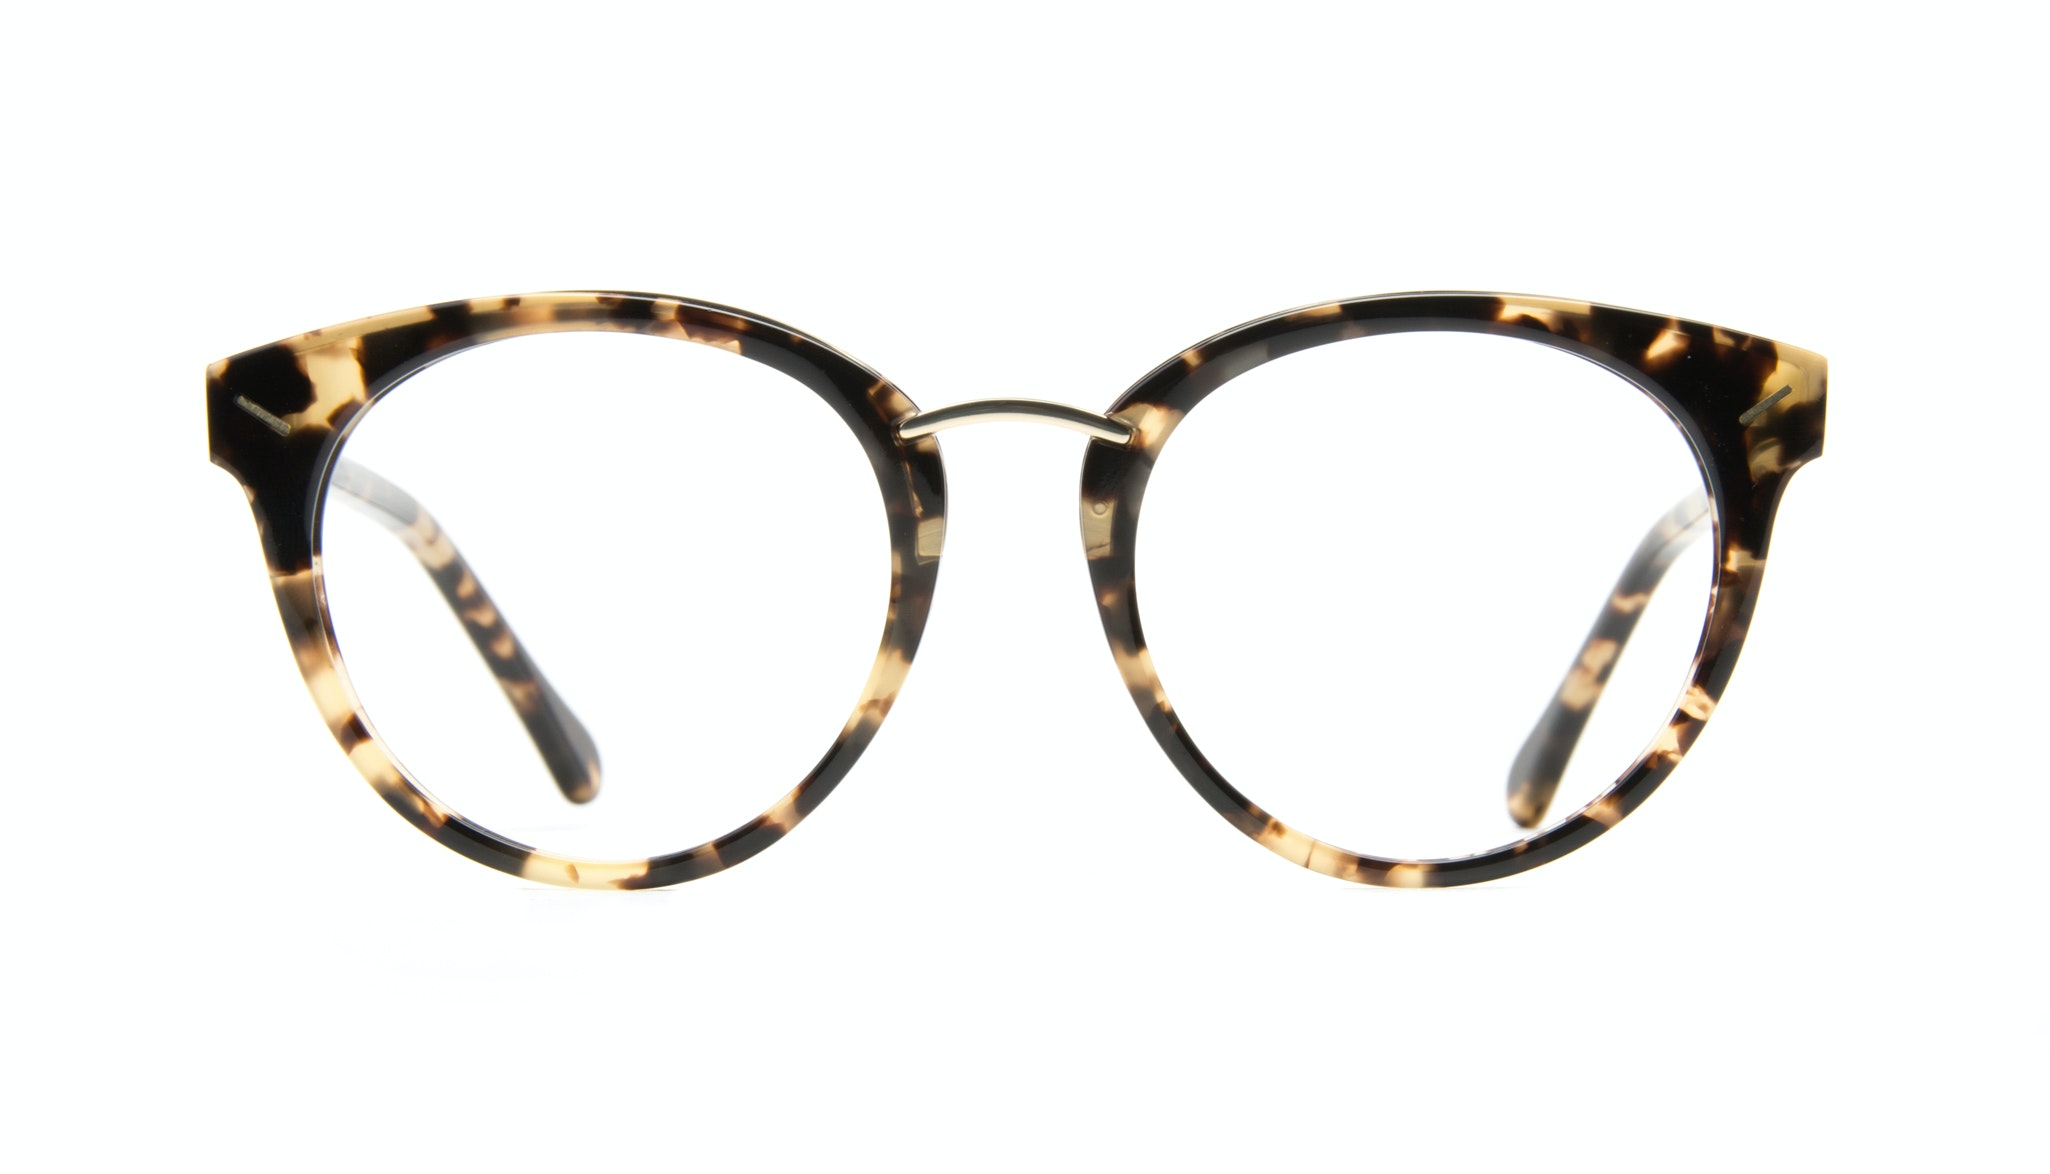 Affordable Fashion Glasses Round Eyeglasses Women Element Gold Tort